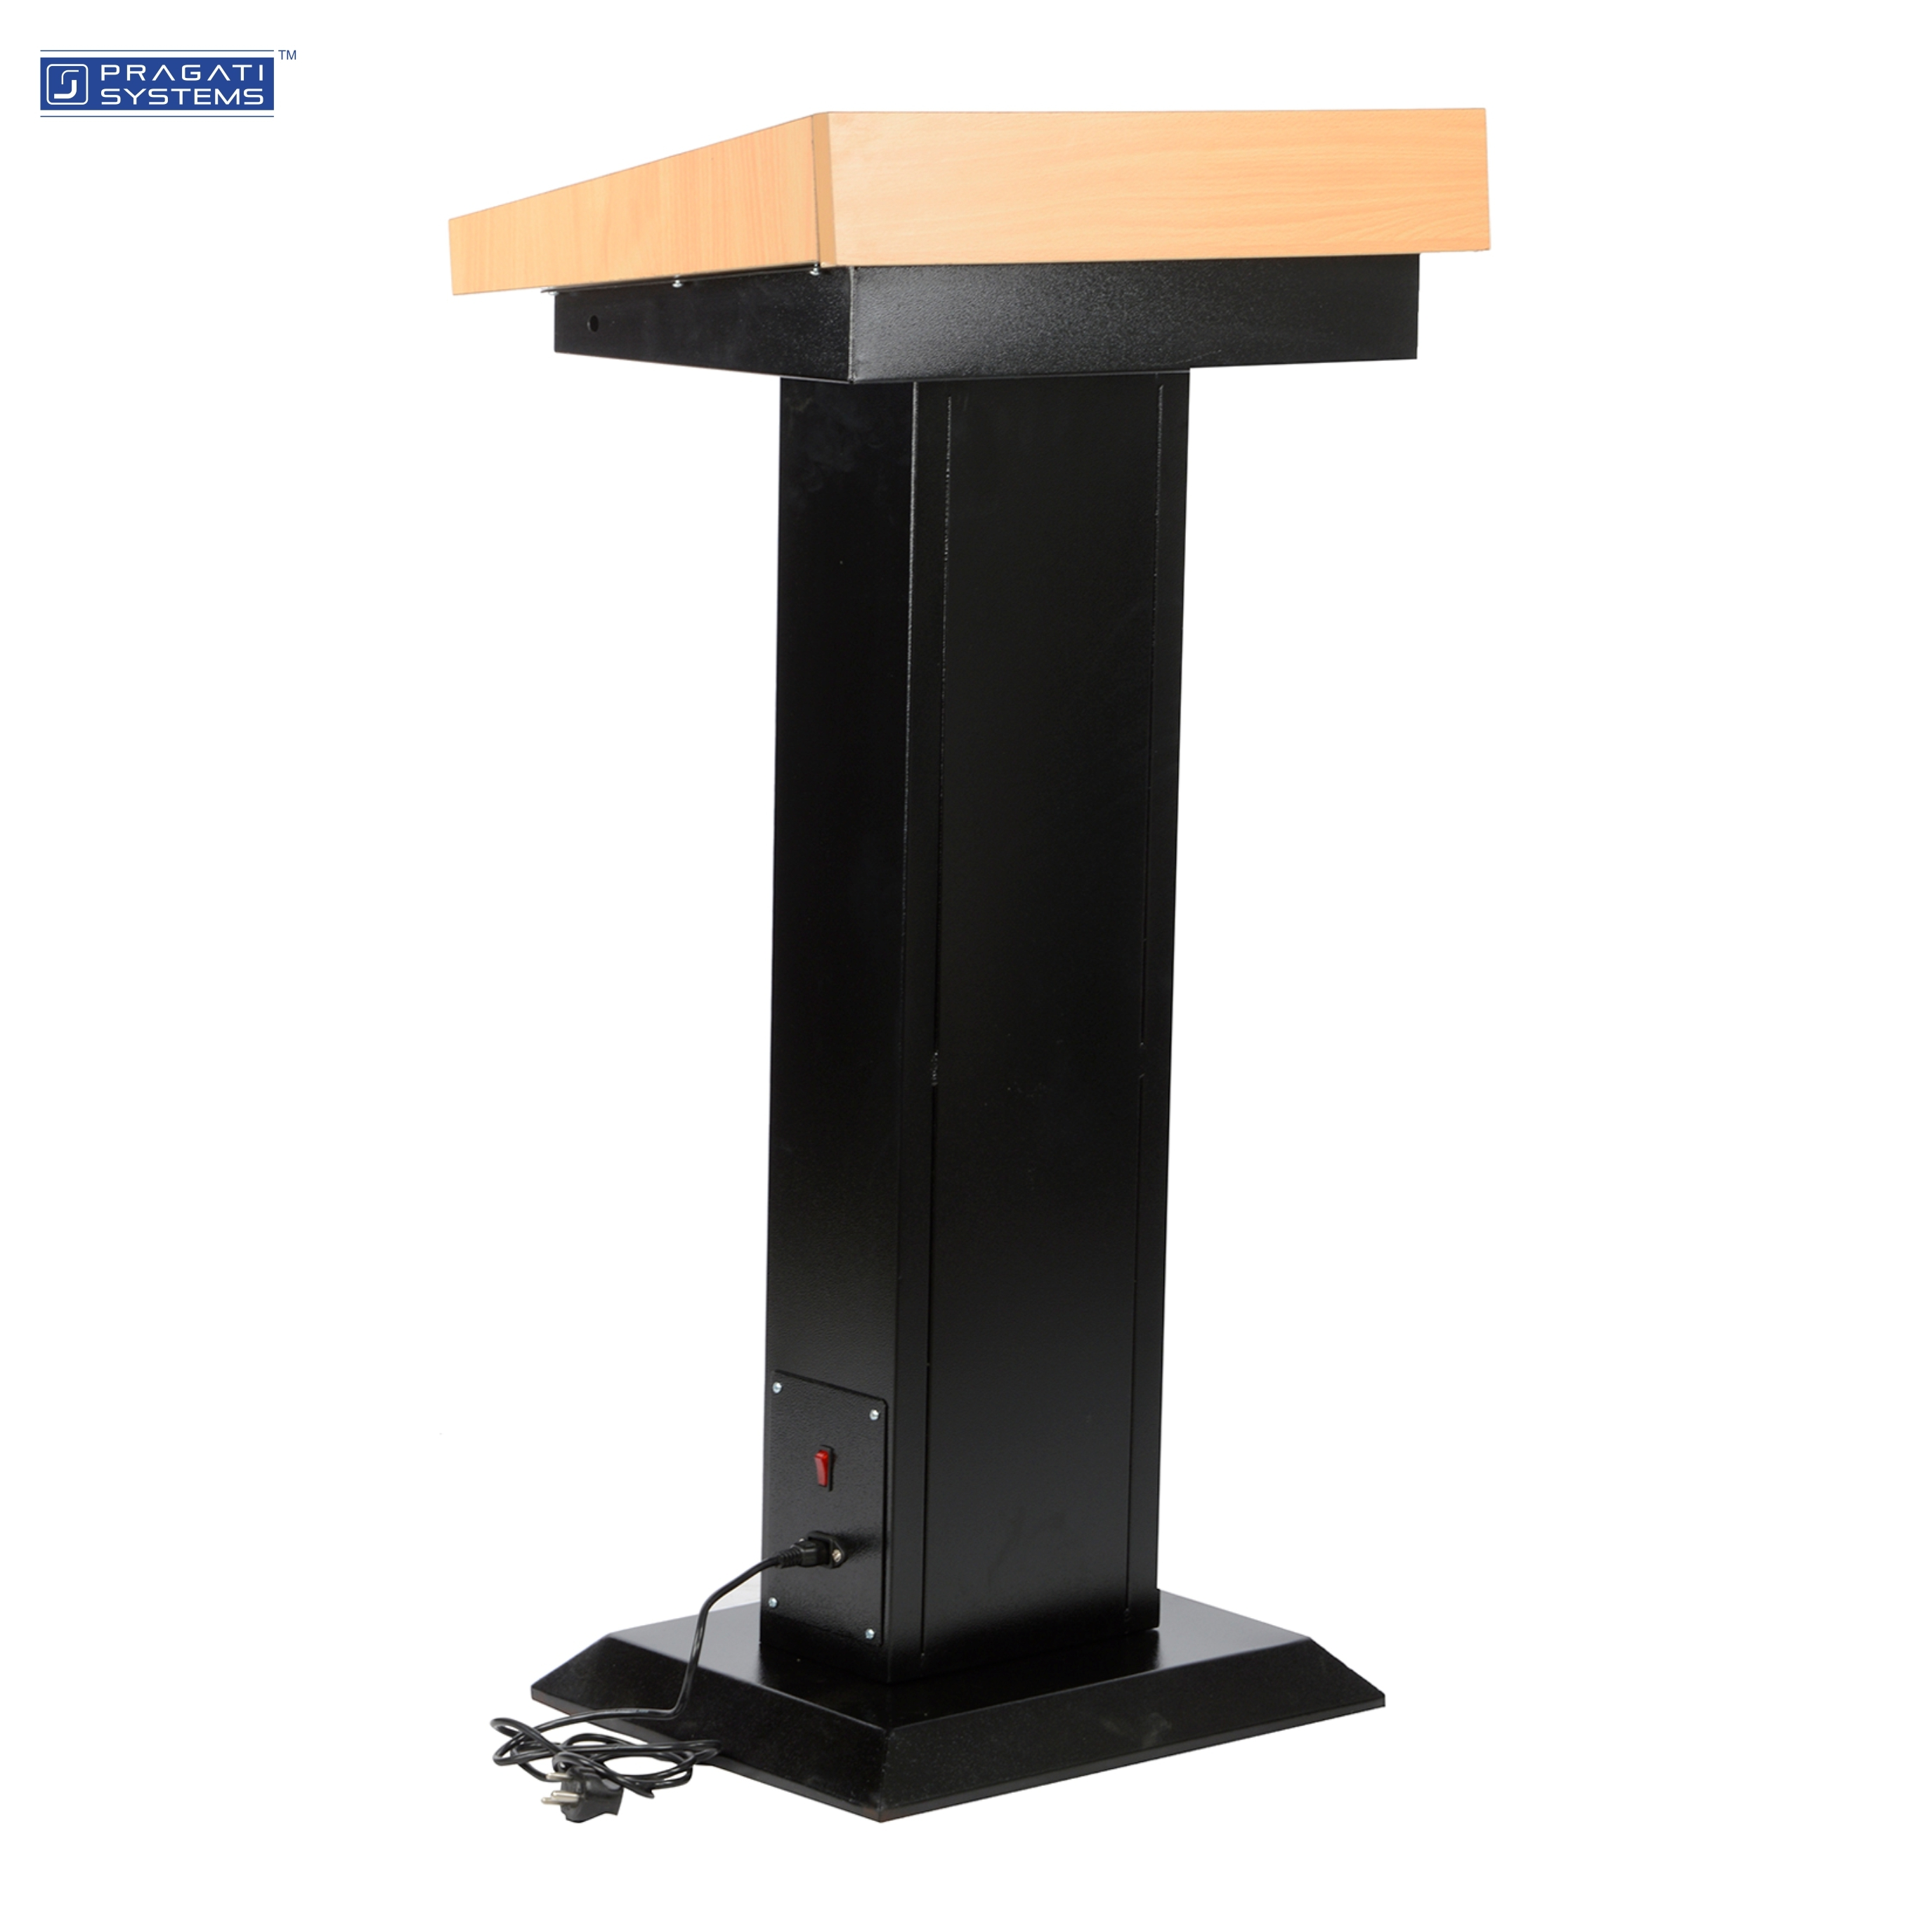 MDF and Steel Podium Stand with Tube Light PDS-02